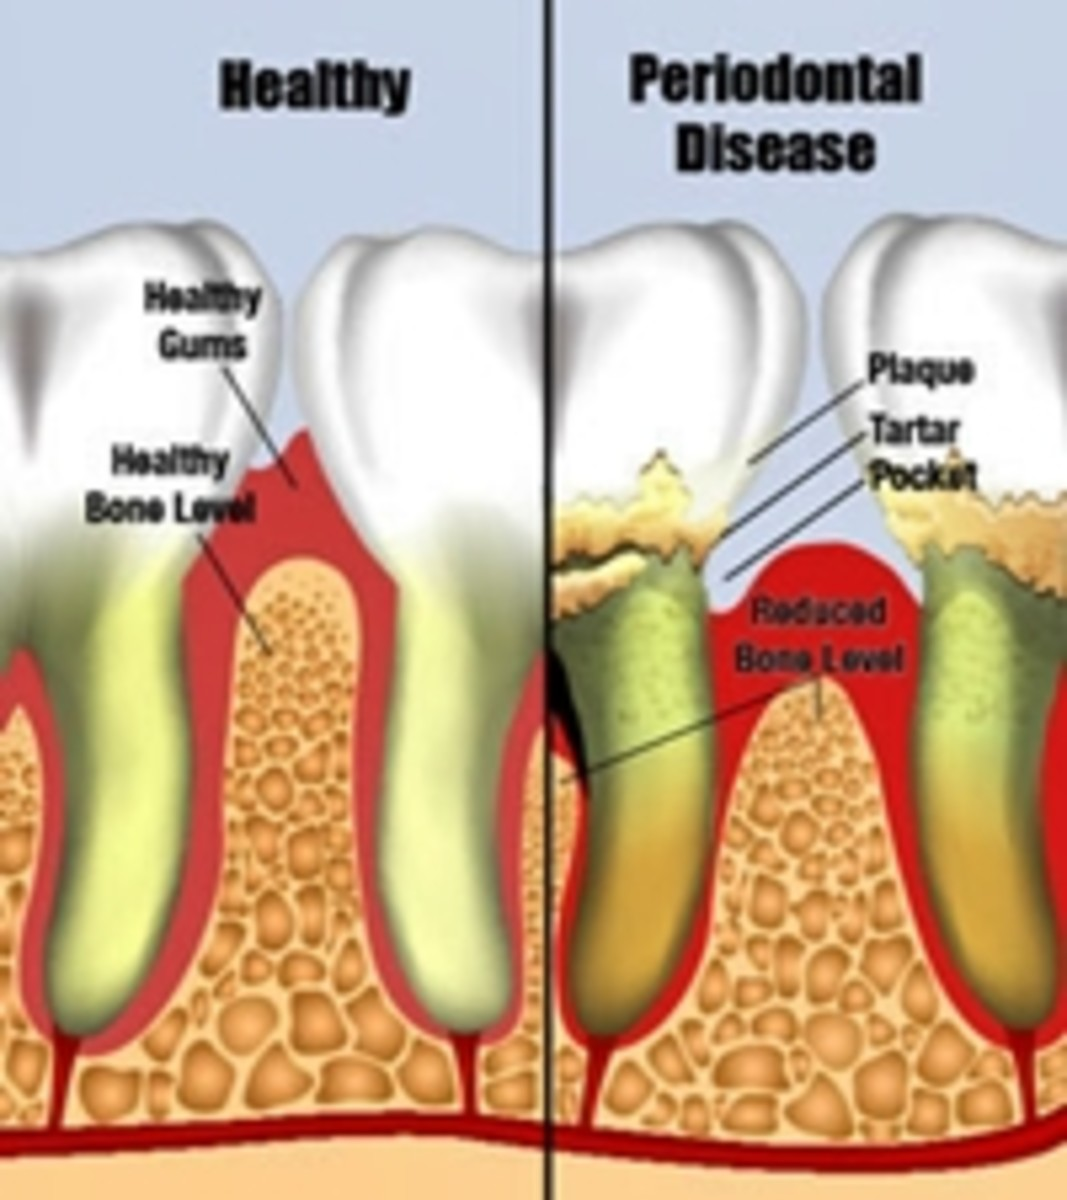 Periodontal Gum Disease, Heart Disease, 6 tips to break link